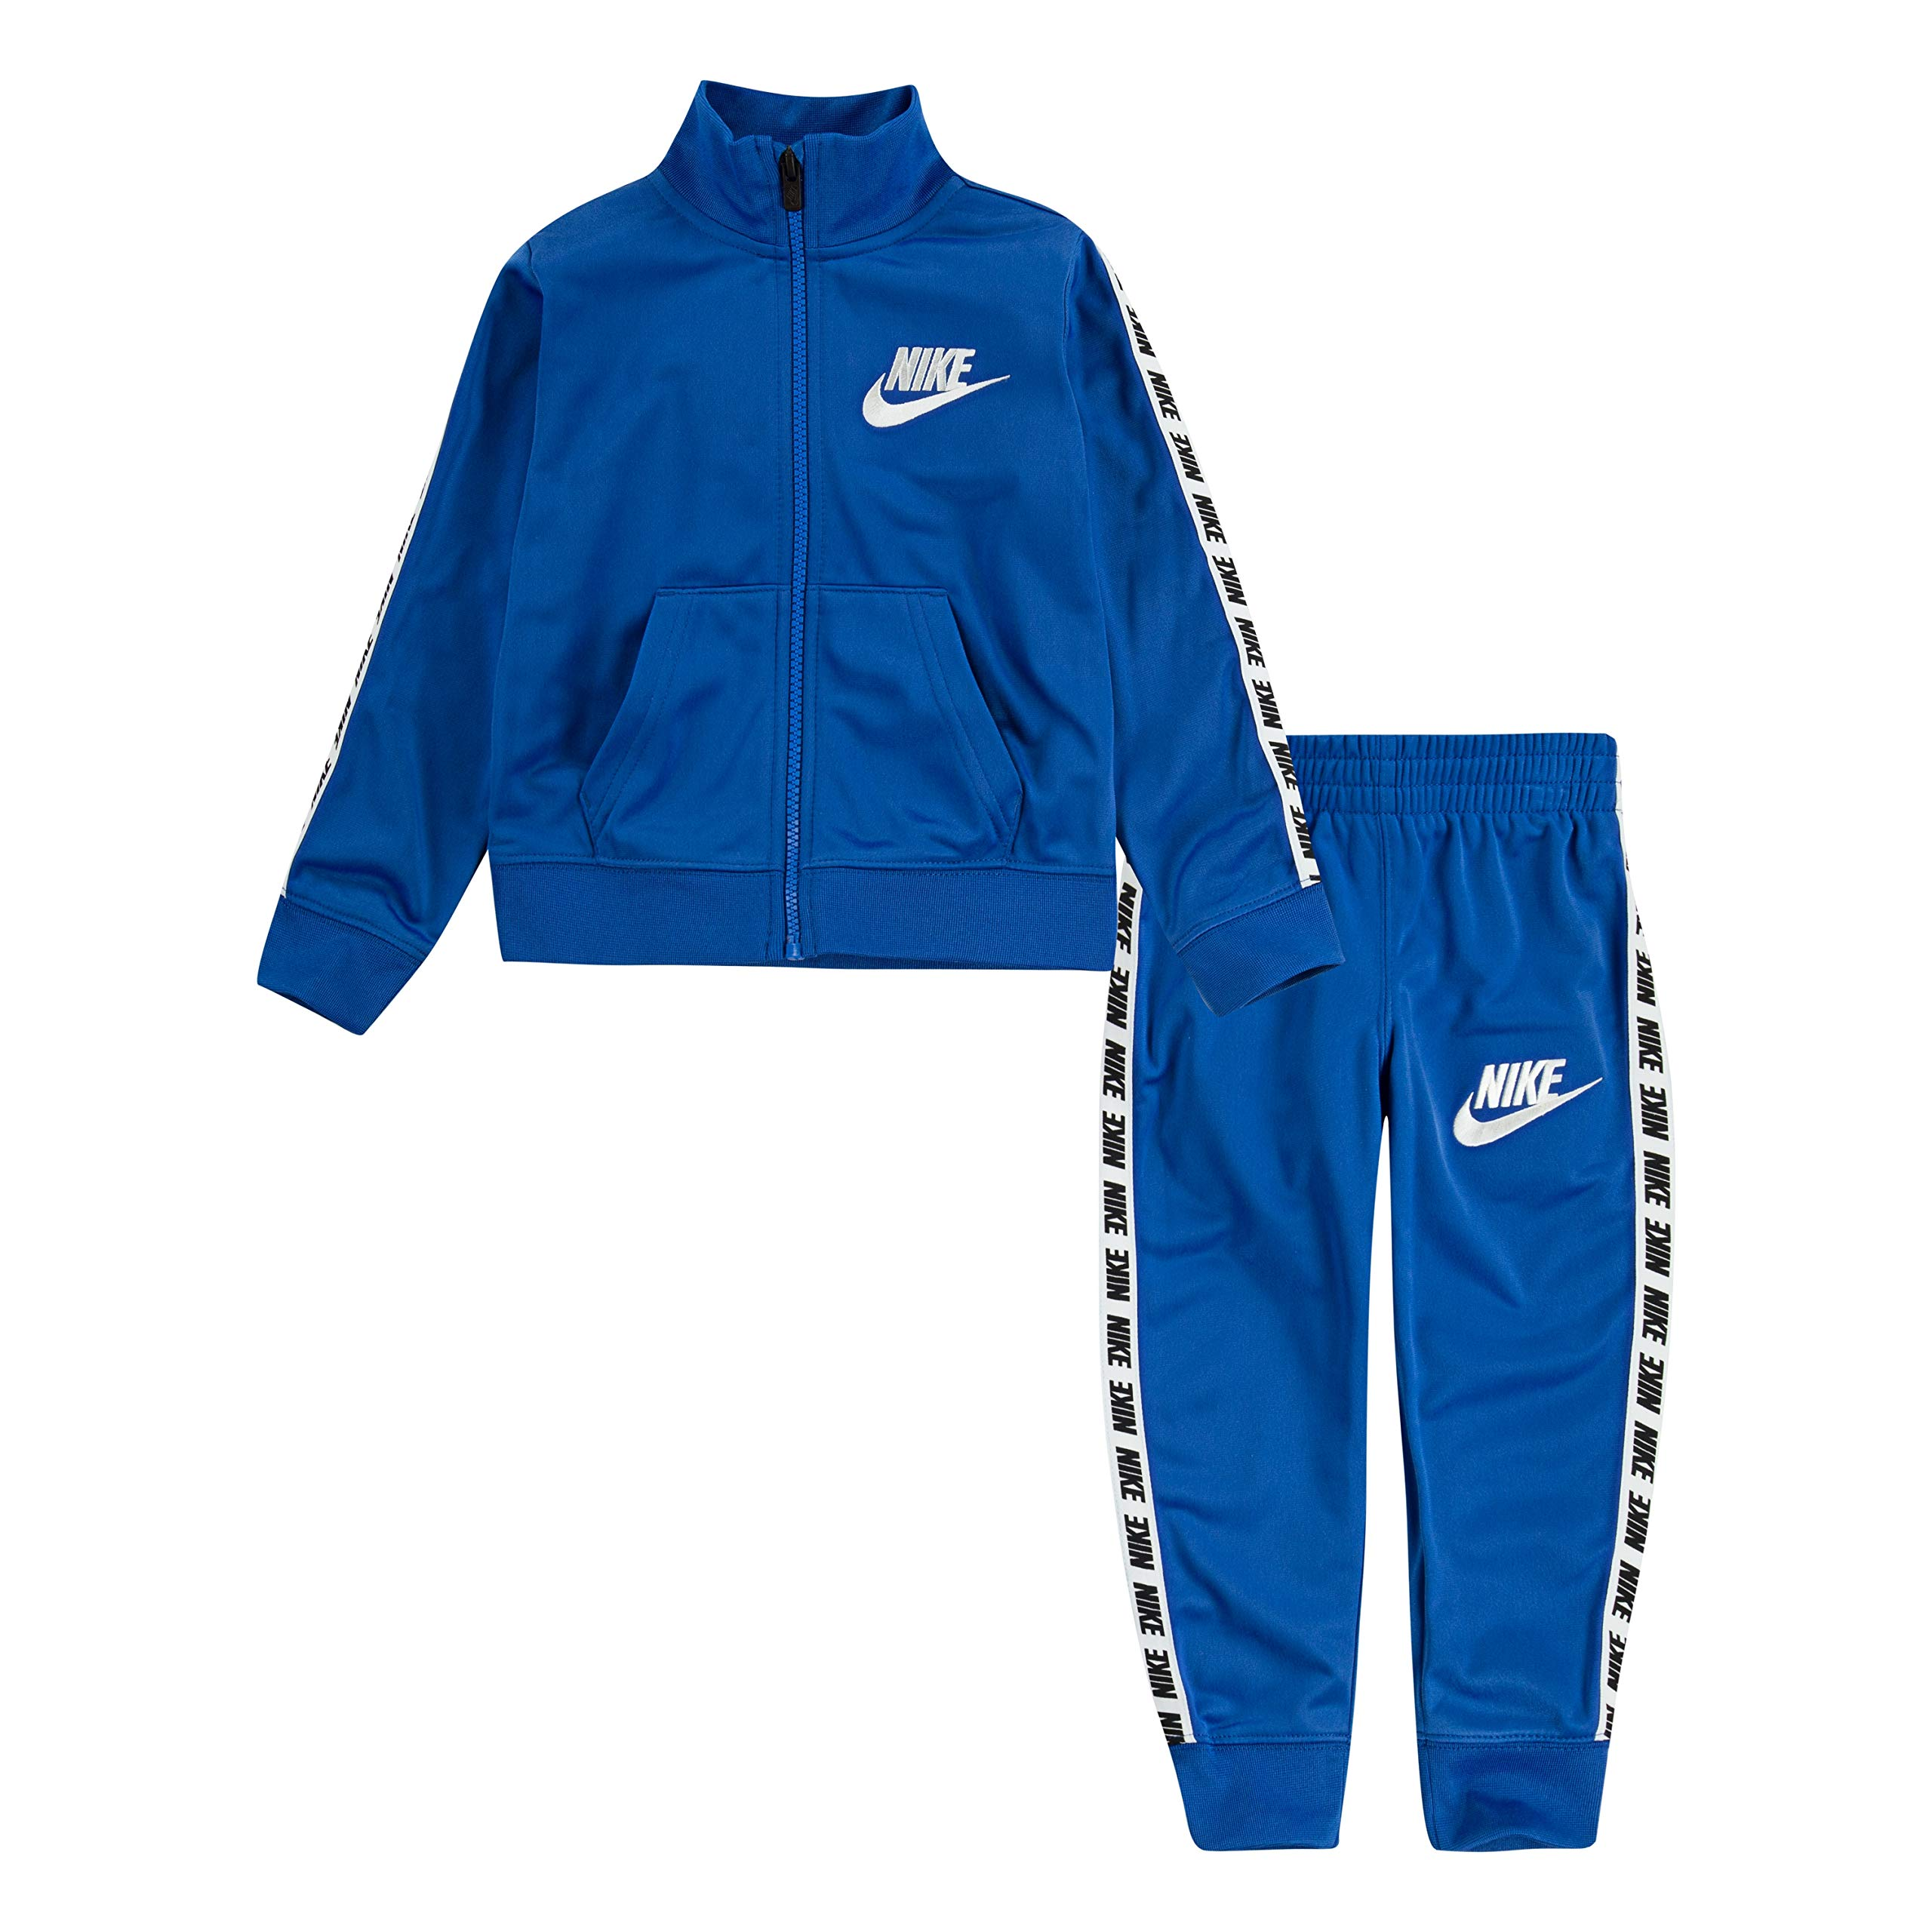 Nike Baby Boys' Little Tricot Track Suit 2-Piece Outfit Set, Game Royal, 5